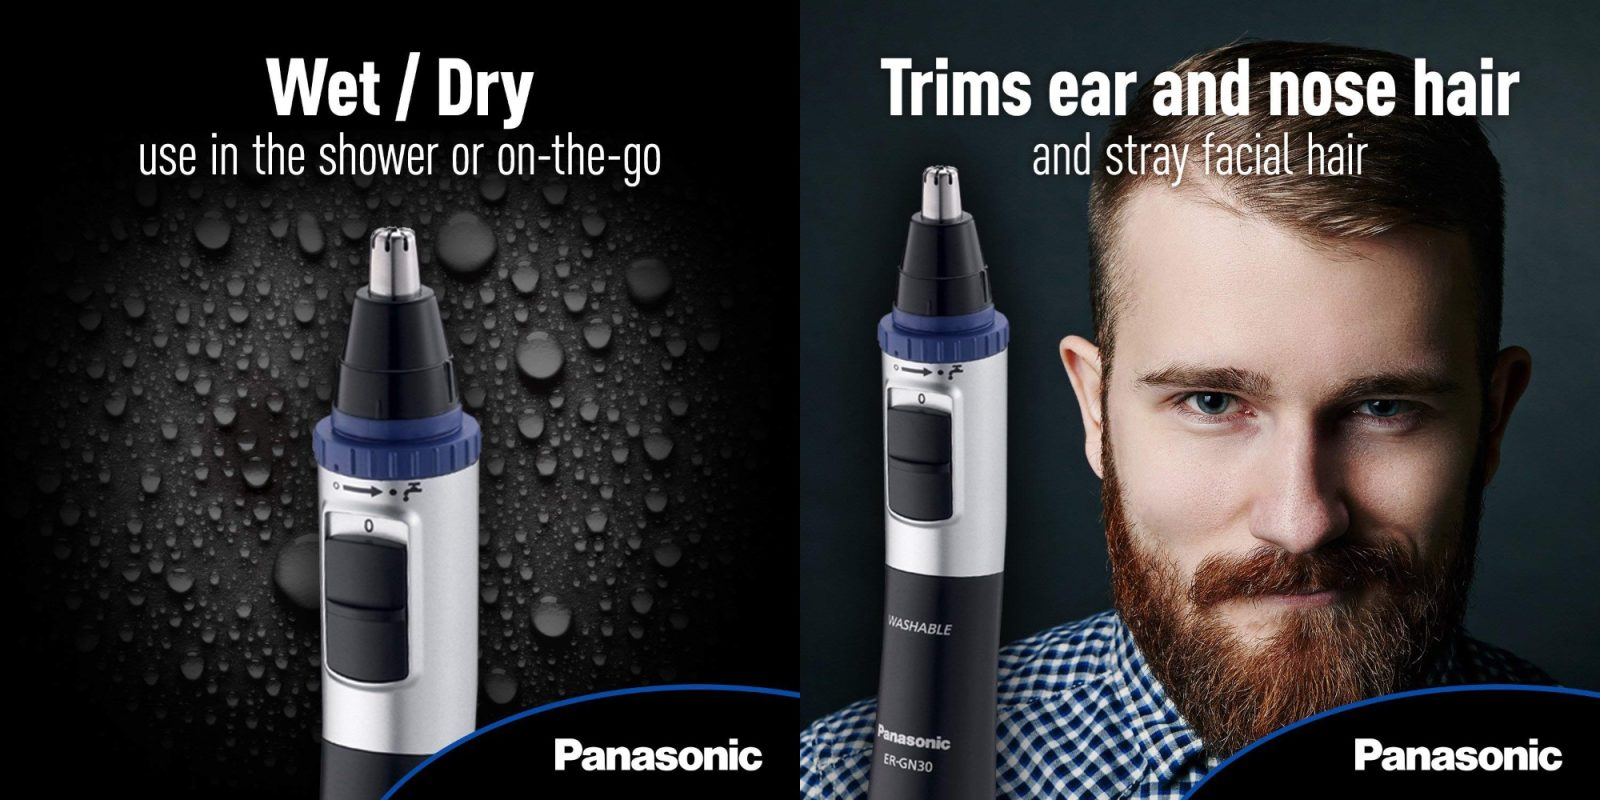 Panasonic's popular Ear & Nose Trimmer is yours for $11 shipped right now (more than 25% off)